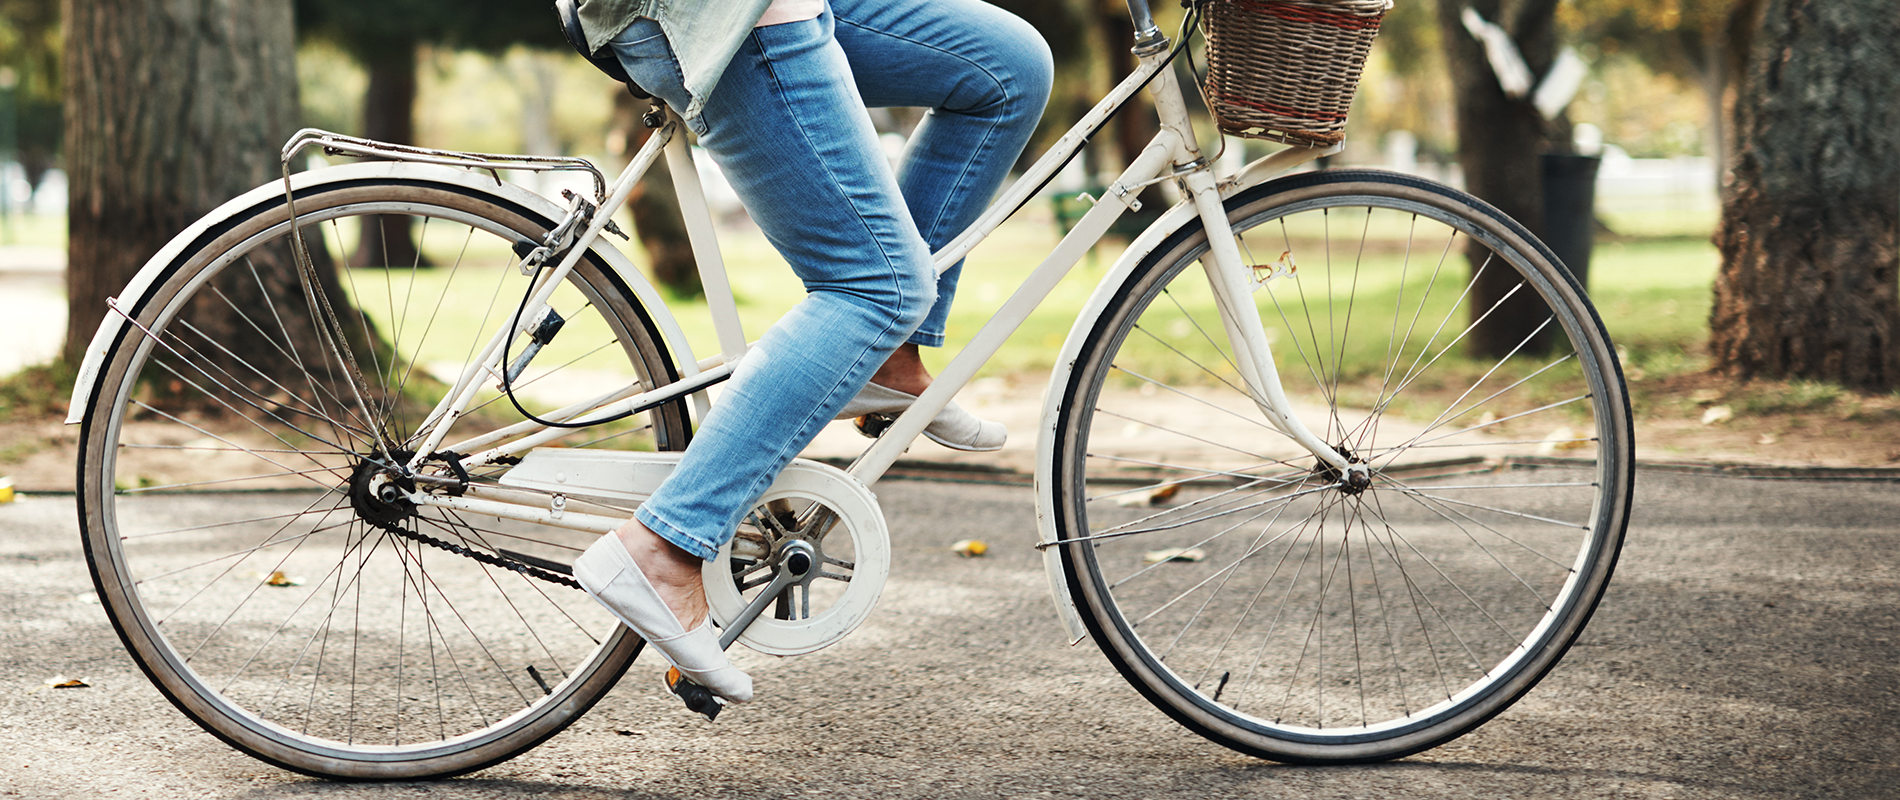 woman_riding bicycle_slider_1900x800